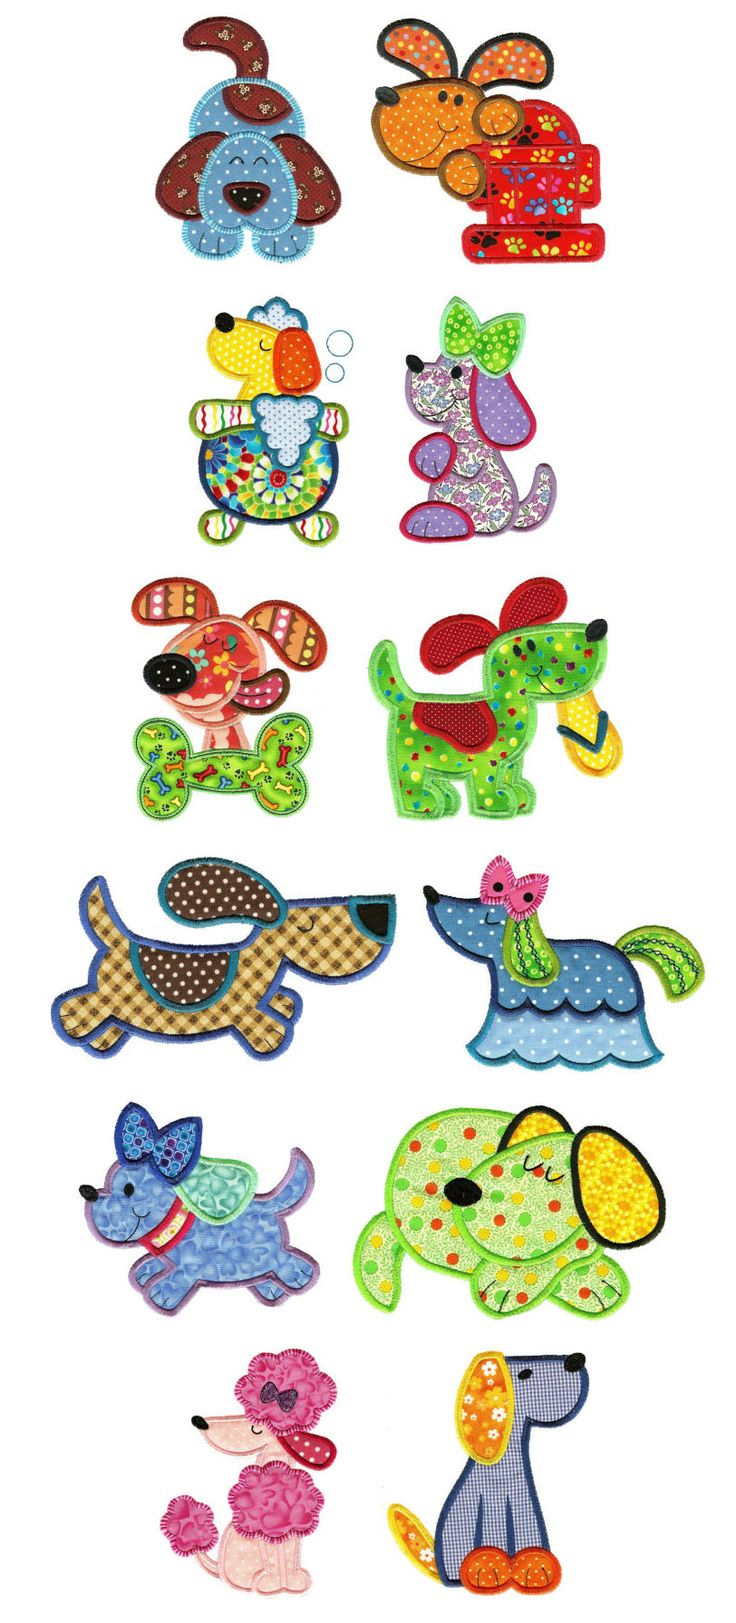 Embroidery | Free Machine Embroidery Designs | Crazy Dogs Applique